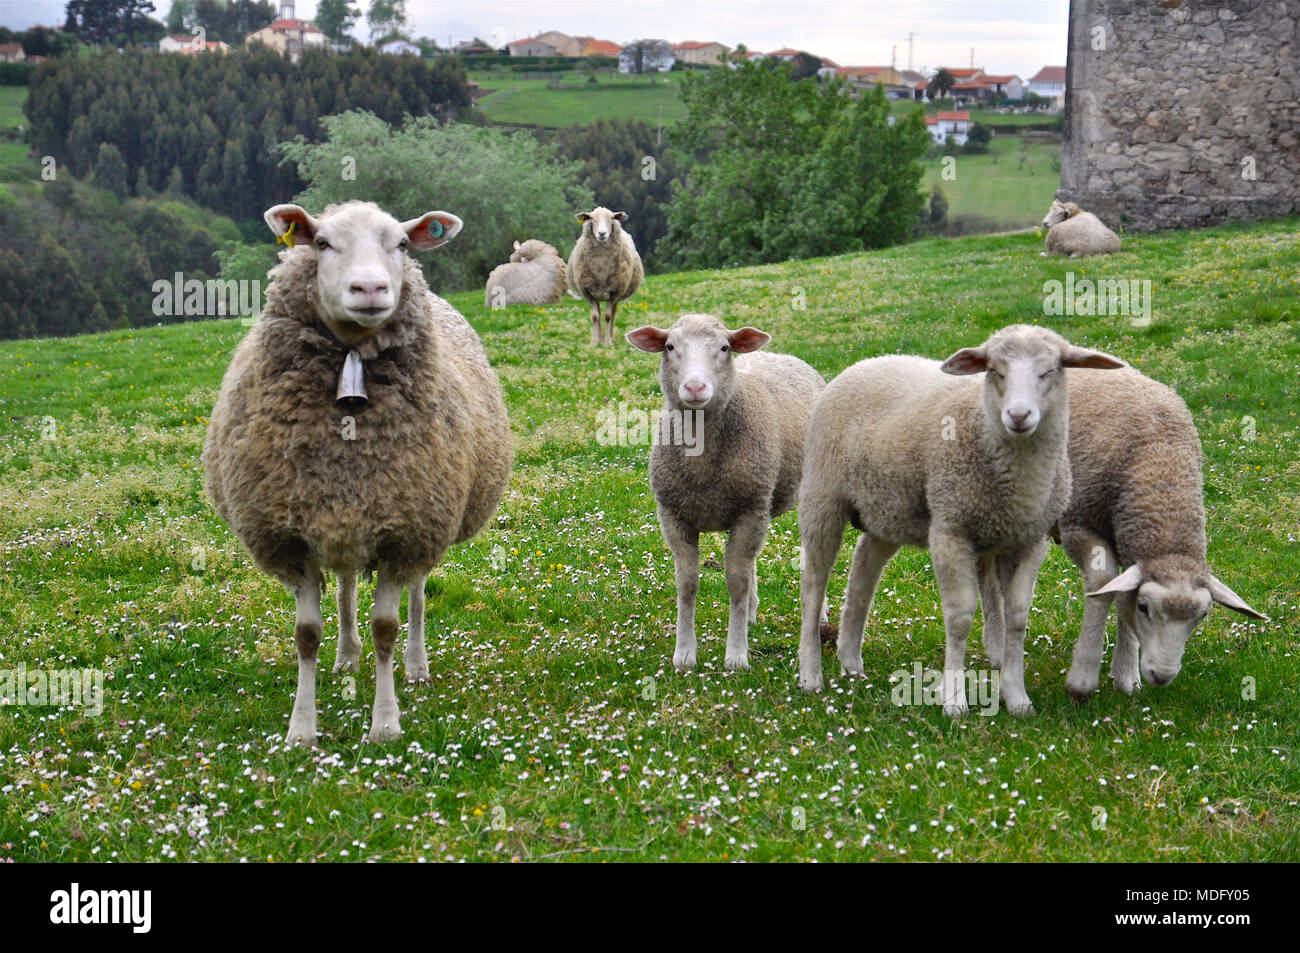 Flock of sheep in a green field in San Martín de Laspra (Castrillón, Asturias, Spain) - Stock Image